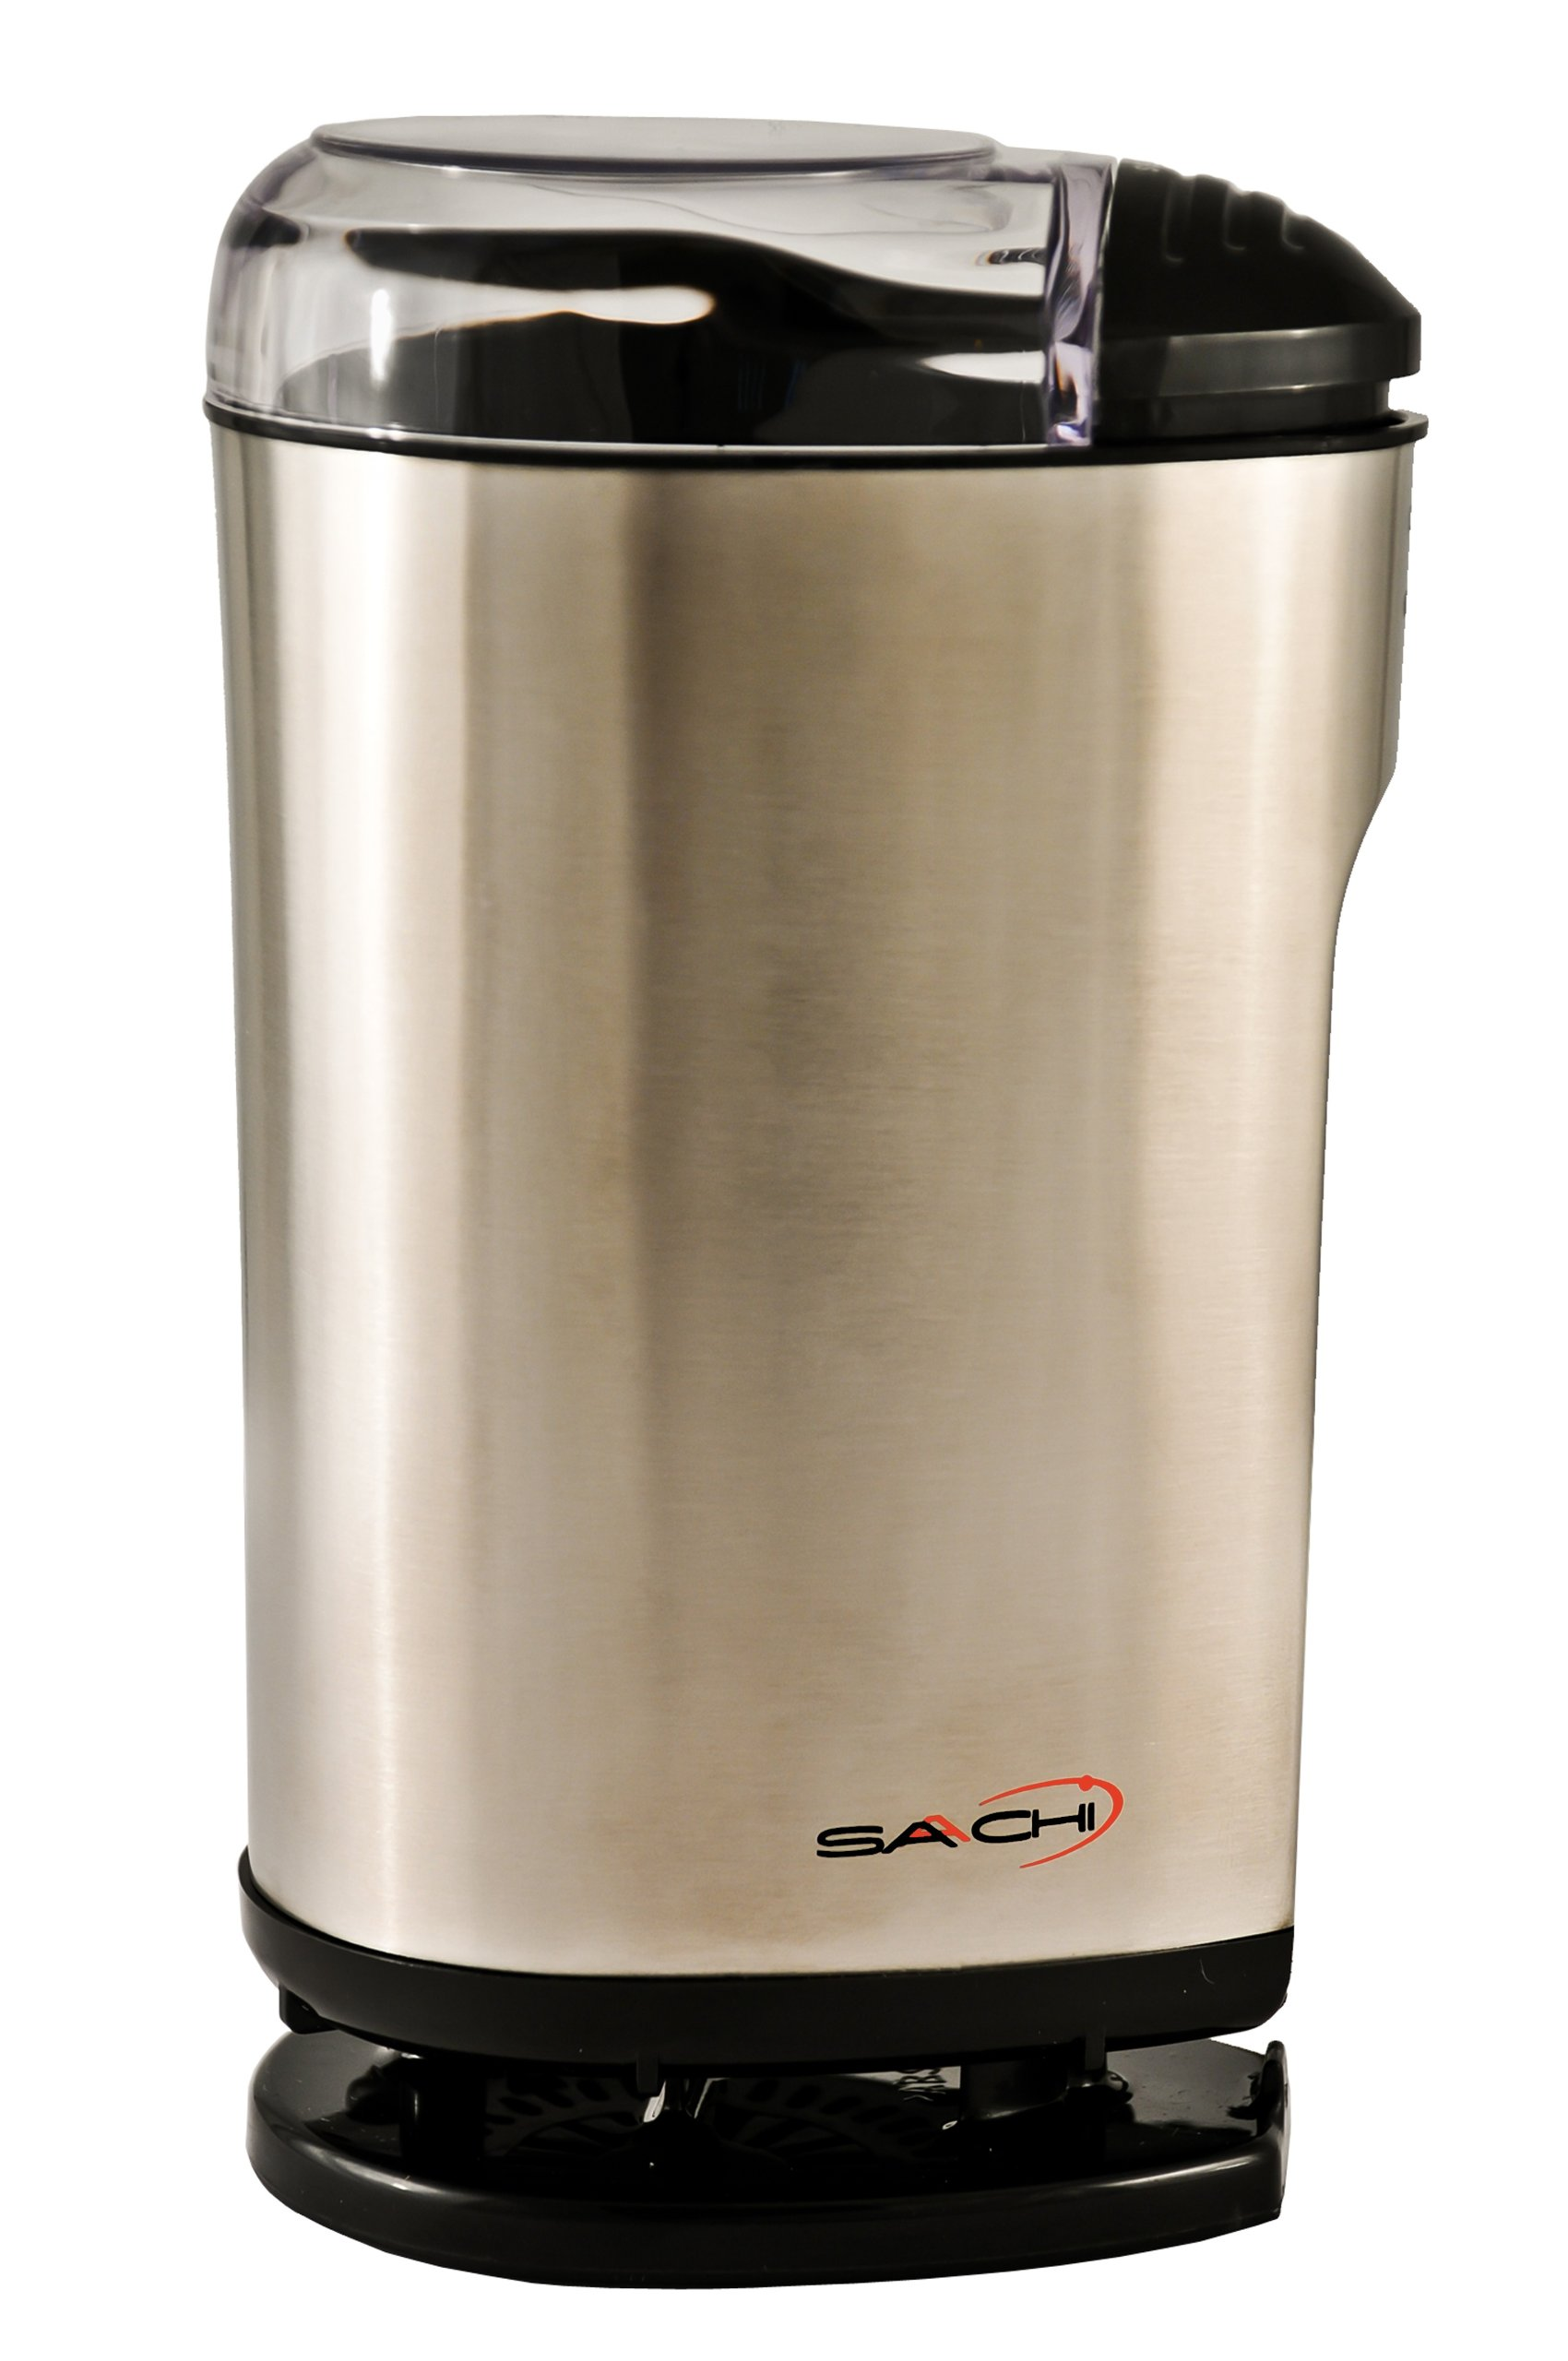 Saachi SA-1440 Electric Coffee Grinder, Small, Silver by Saachi